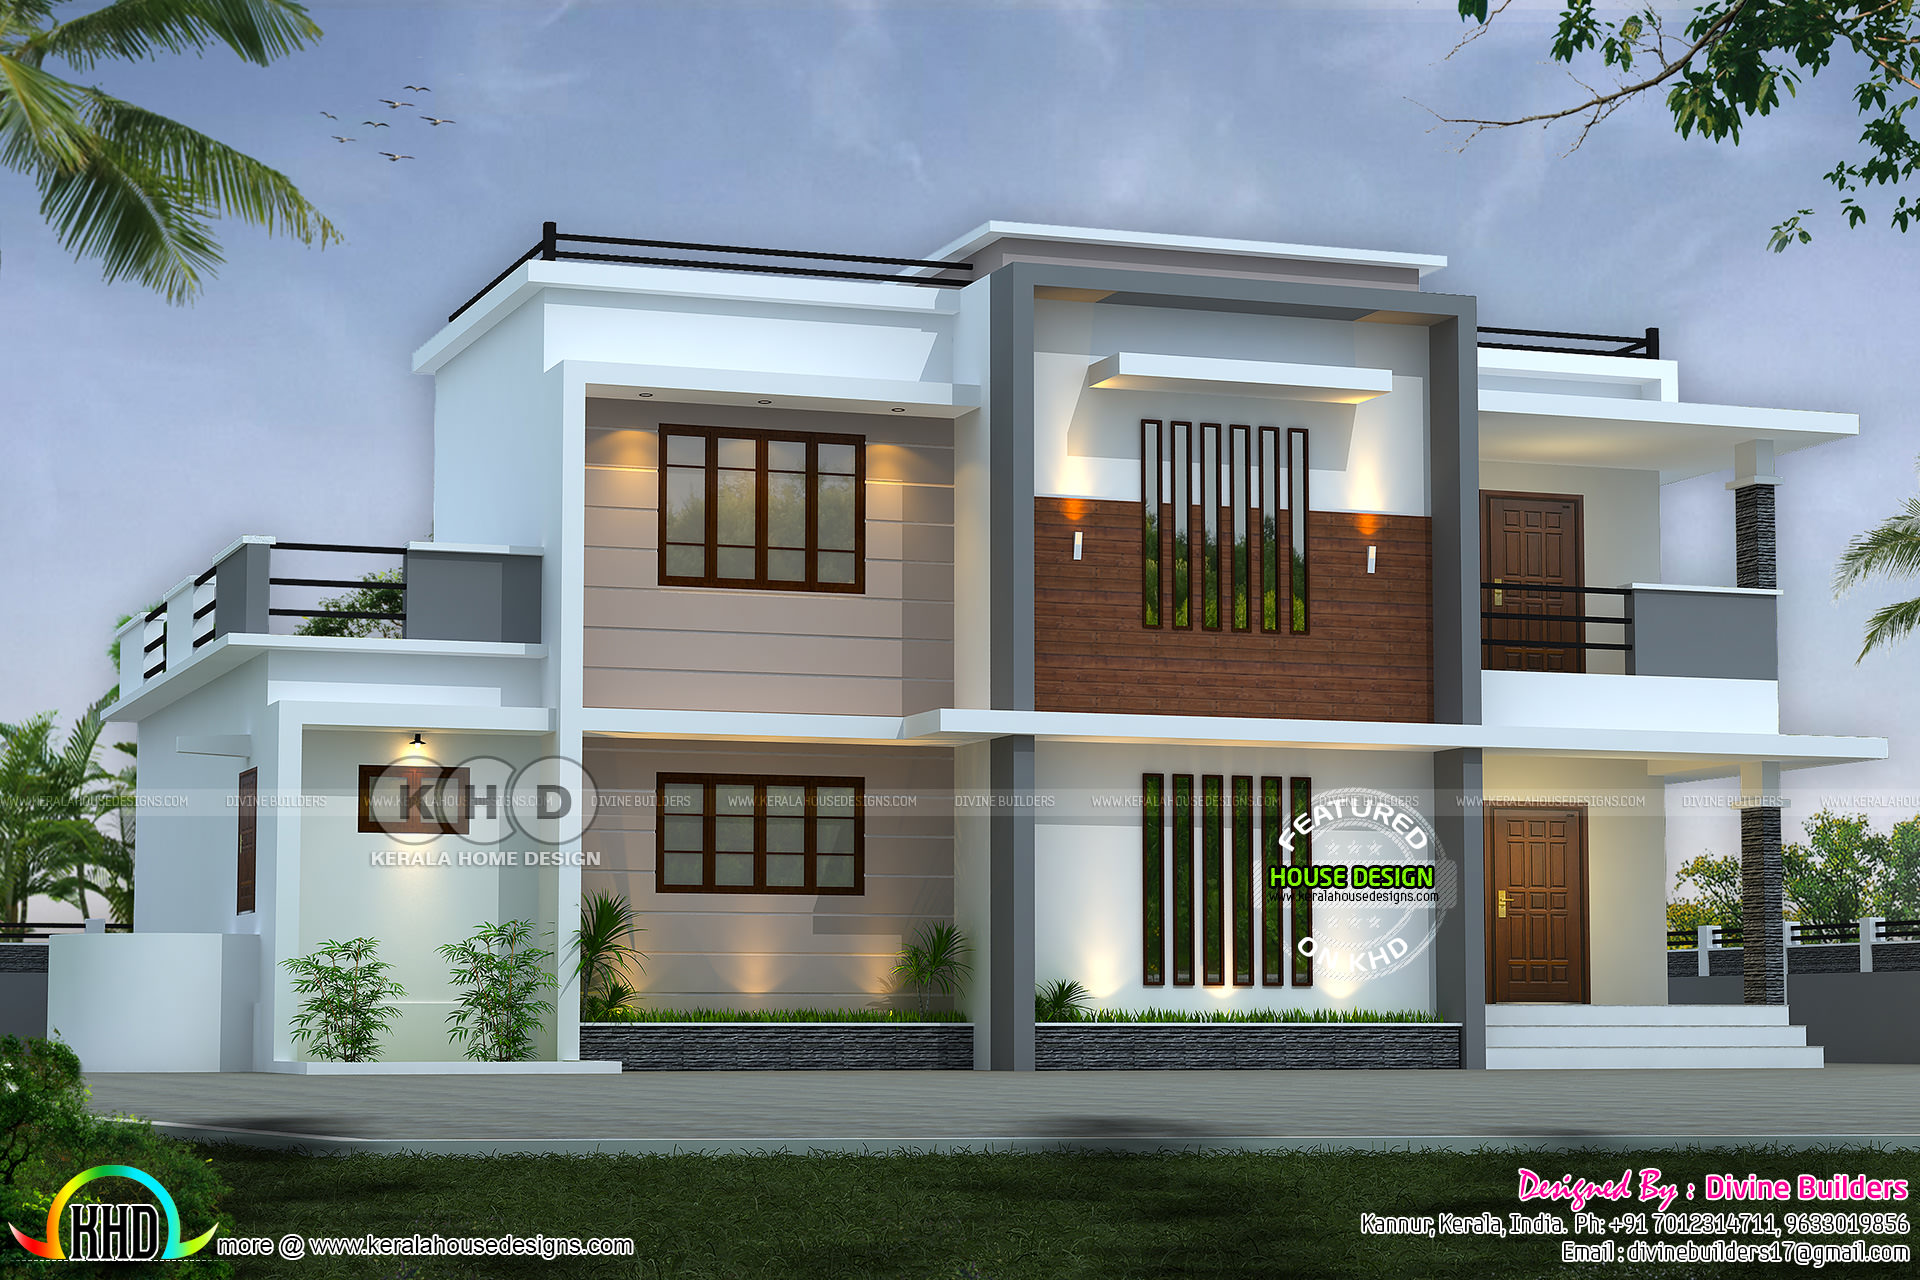 38 lakhs cost estimated 2325 square feet home kerala home design and floor plans for Kerala home designs and estimated price